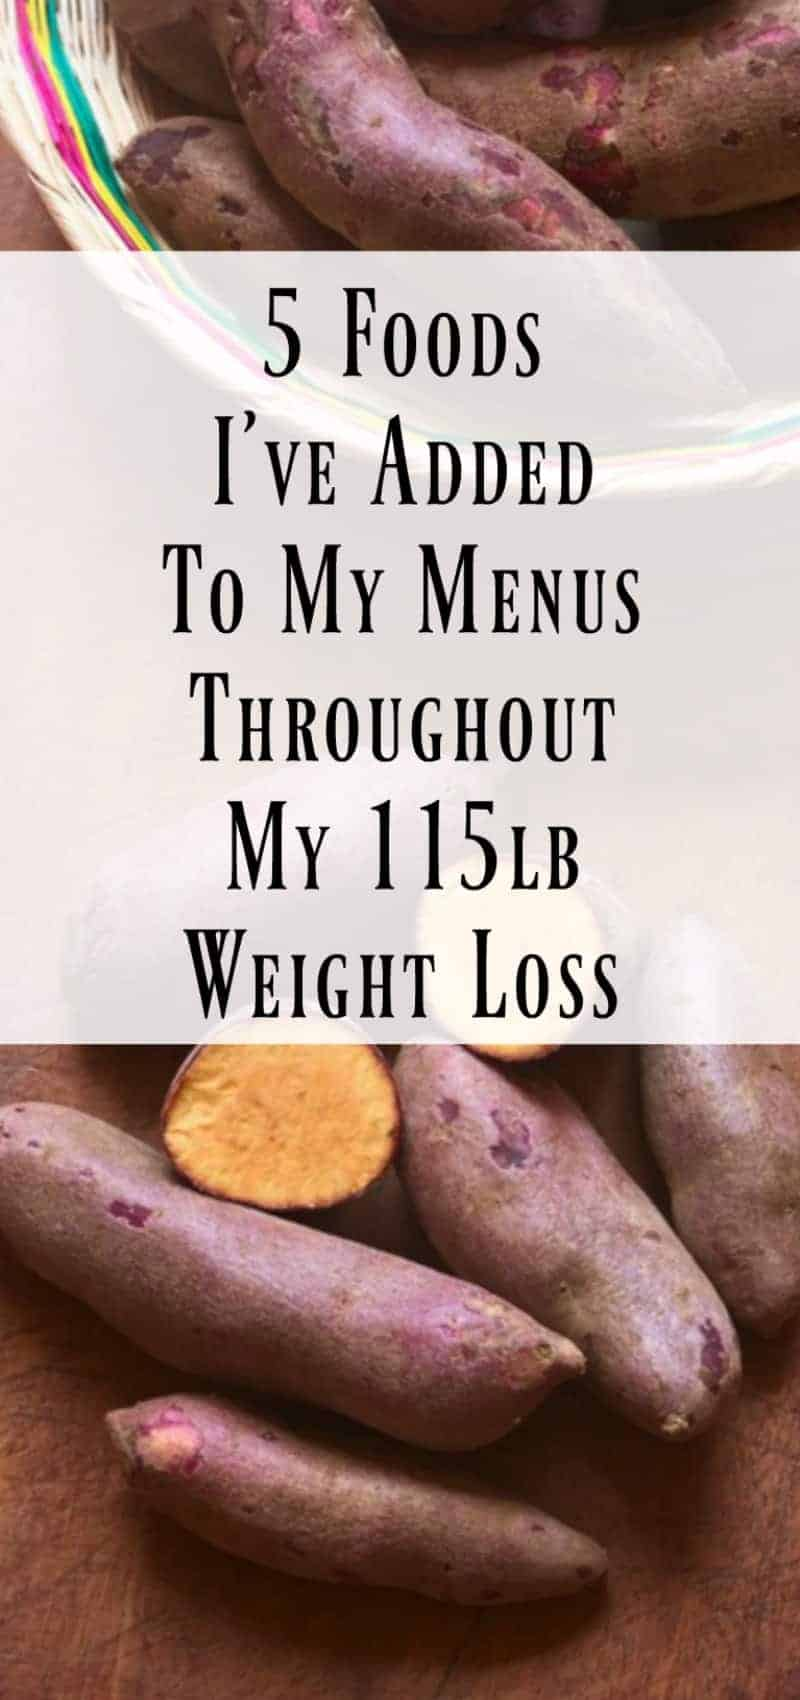 5 Foods I've Added To My Menus Through My 115lb Weight Loss